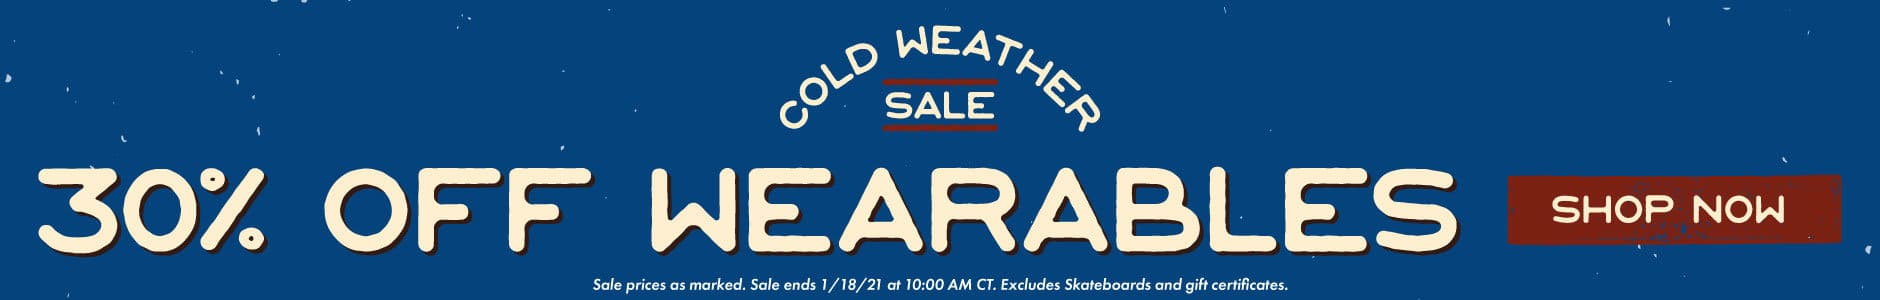 Cold Weather Sale - 30% off Wearables